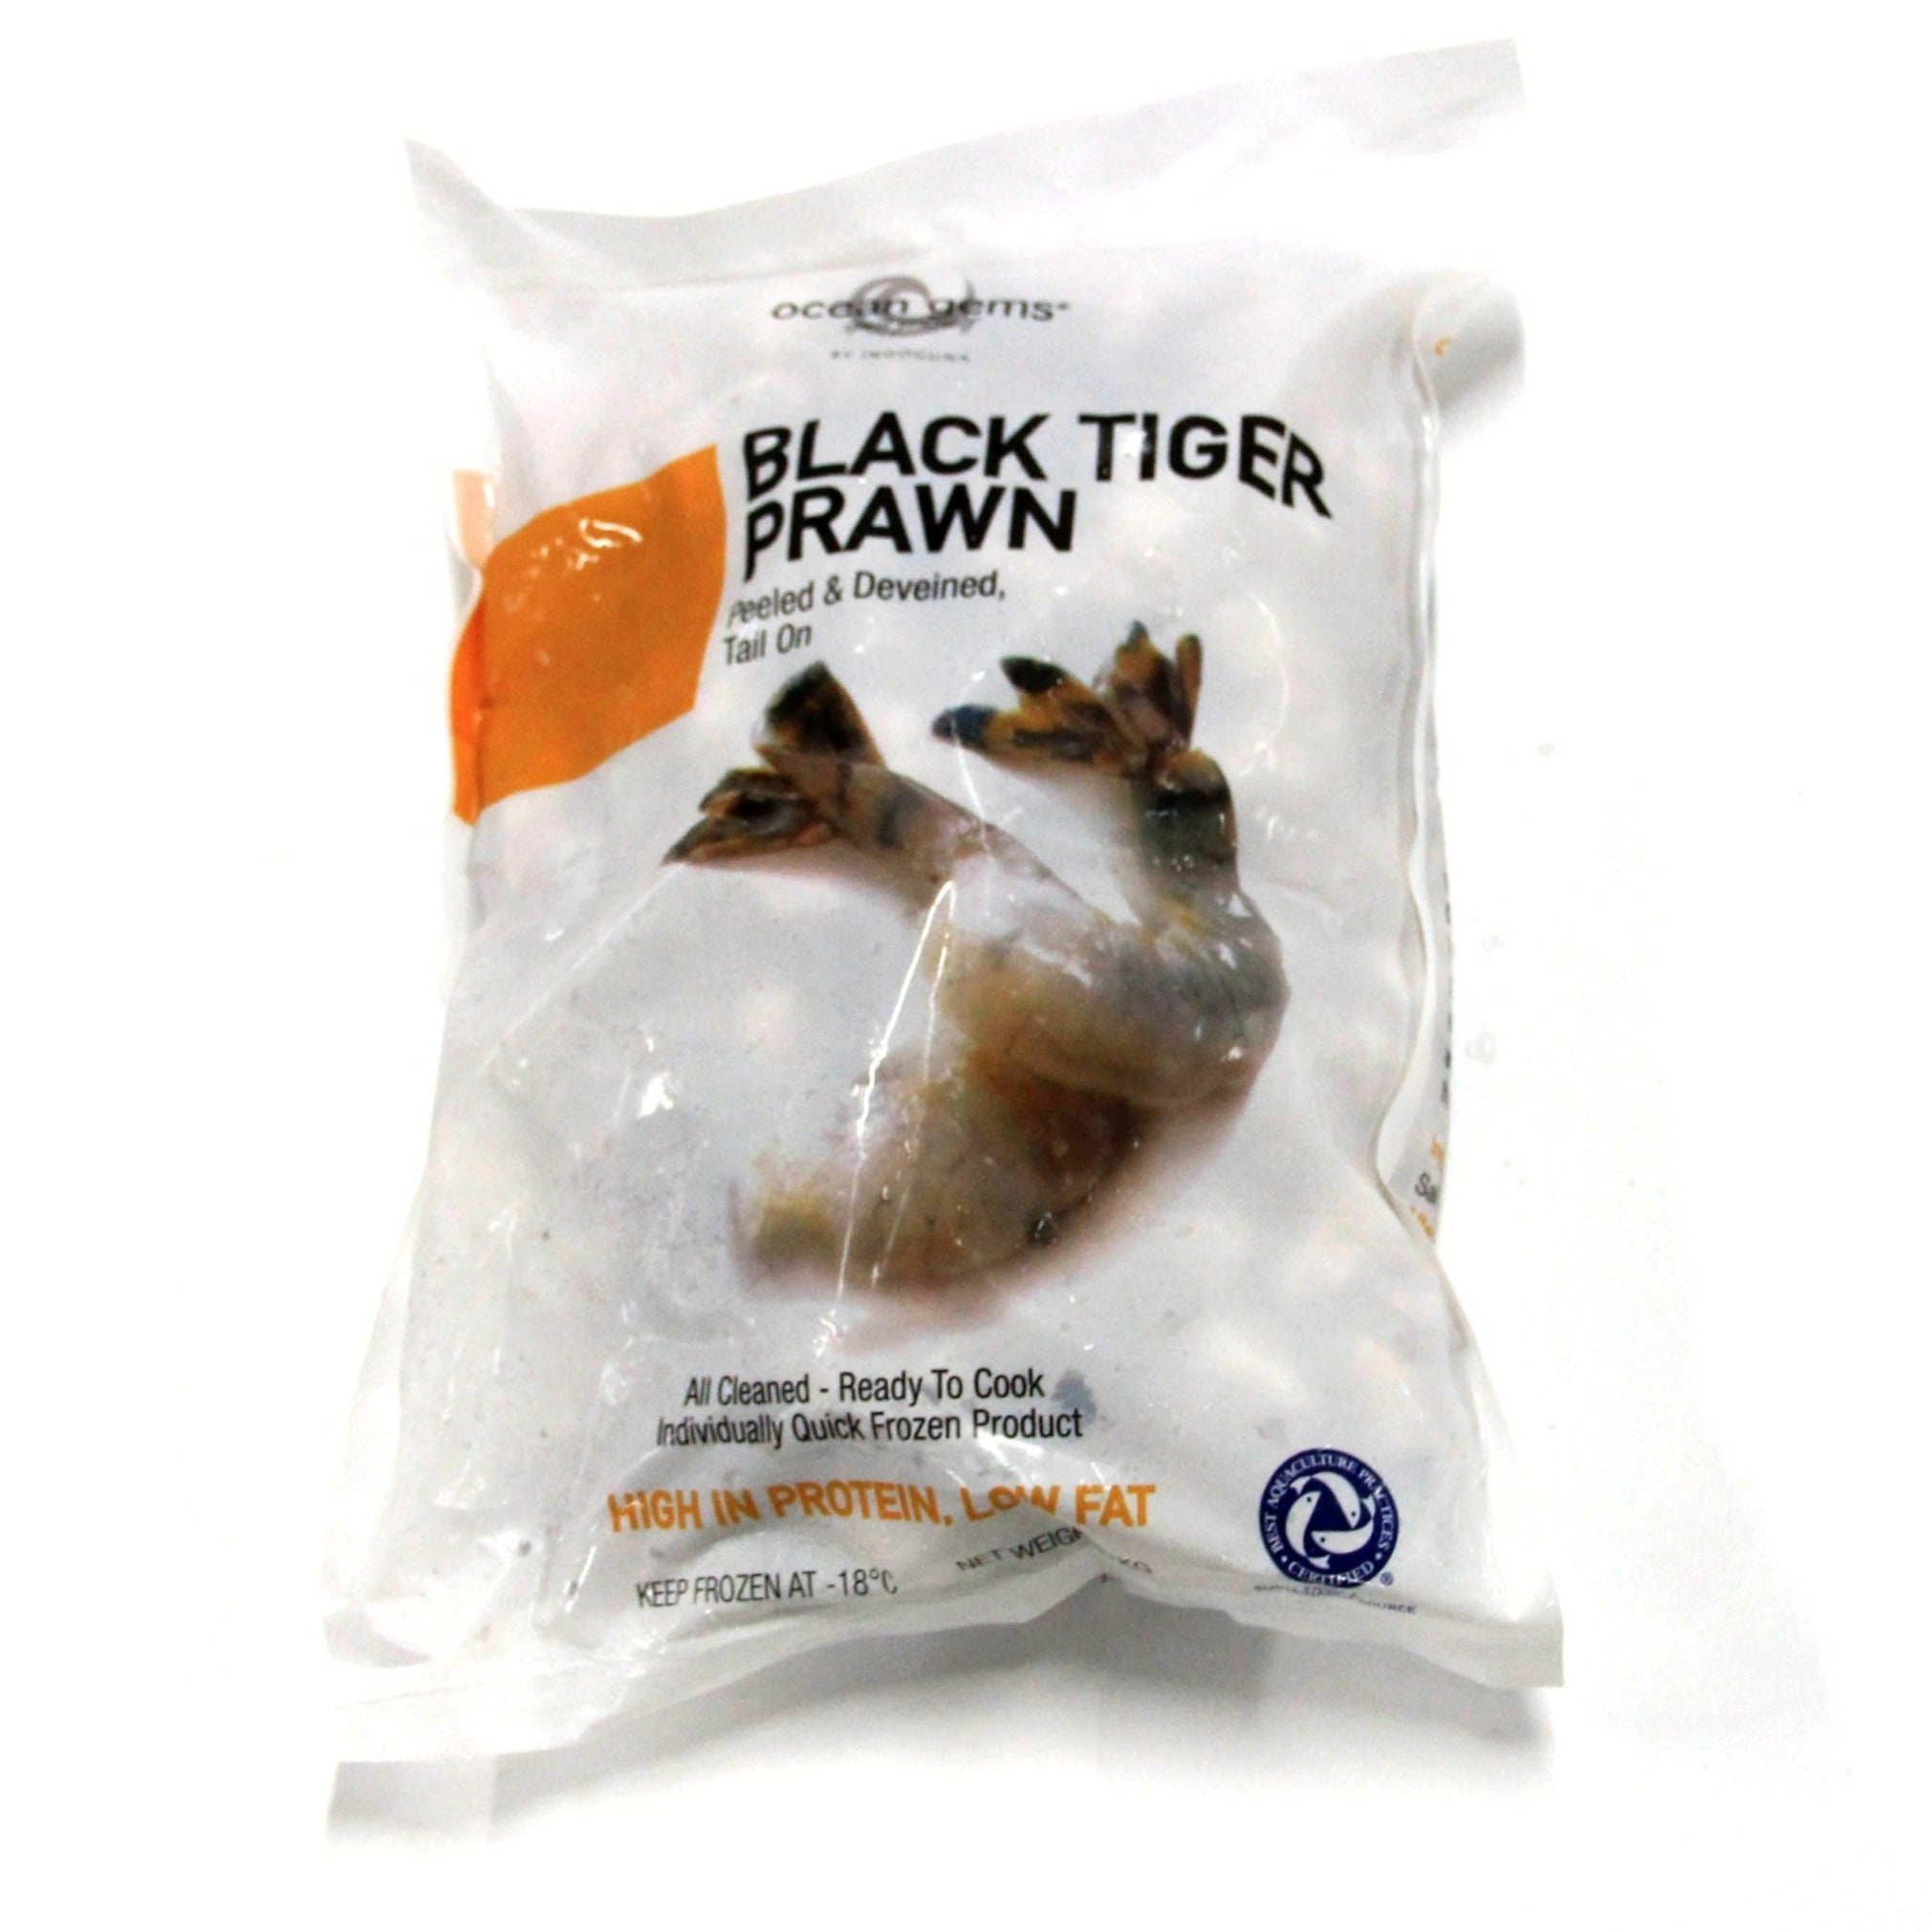 Black Tiger Prawn - rabbit-carrot-gun-market.com